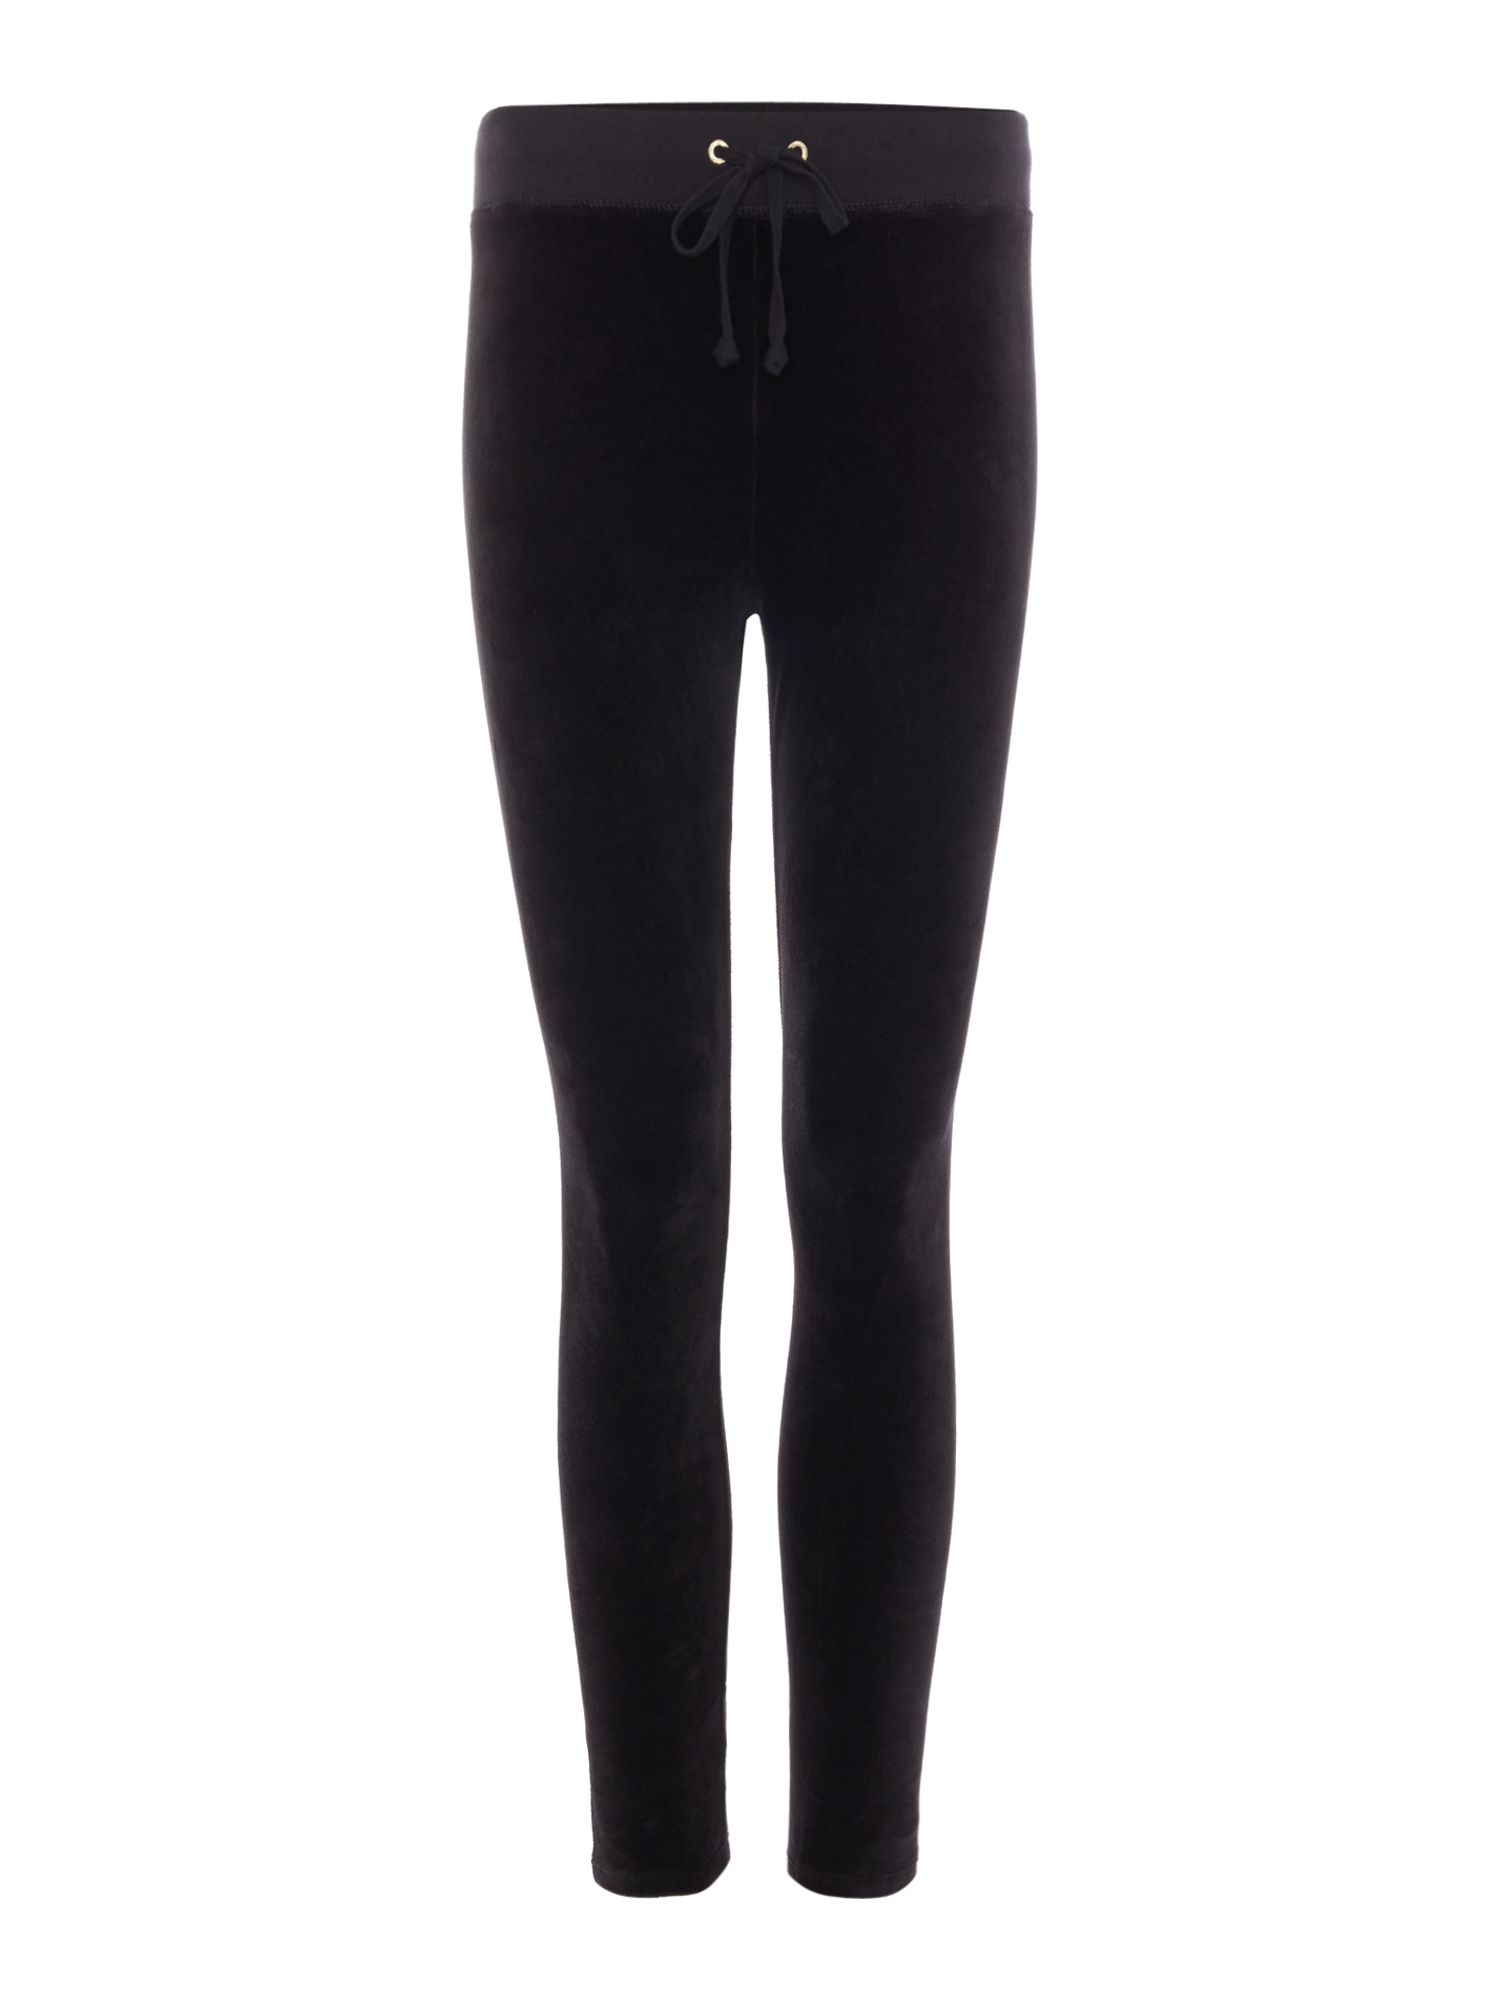 Juicy by Juicy Couture Velour Rodeo Drive Stretch Leggings, Black